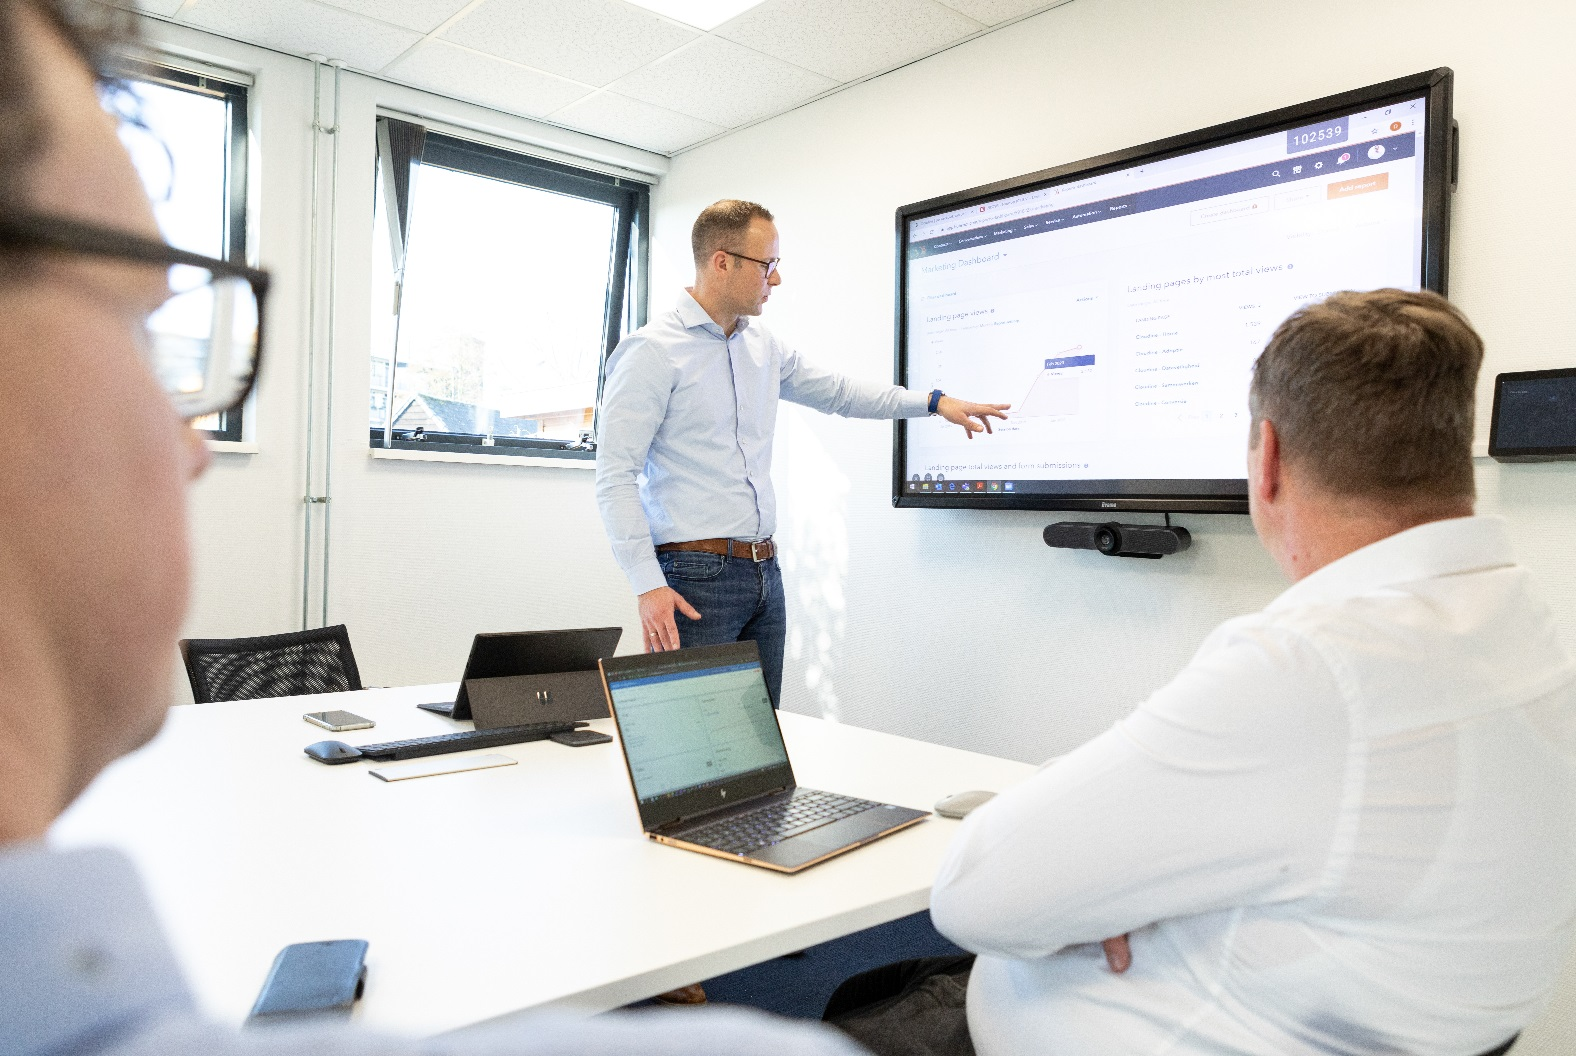 Adoptie en trainingen | Fourtop ICT